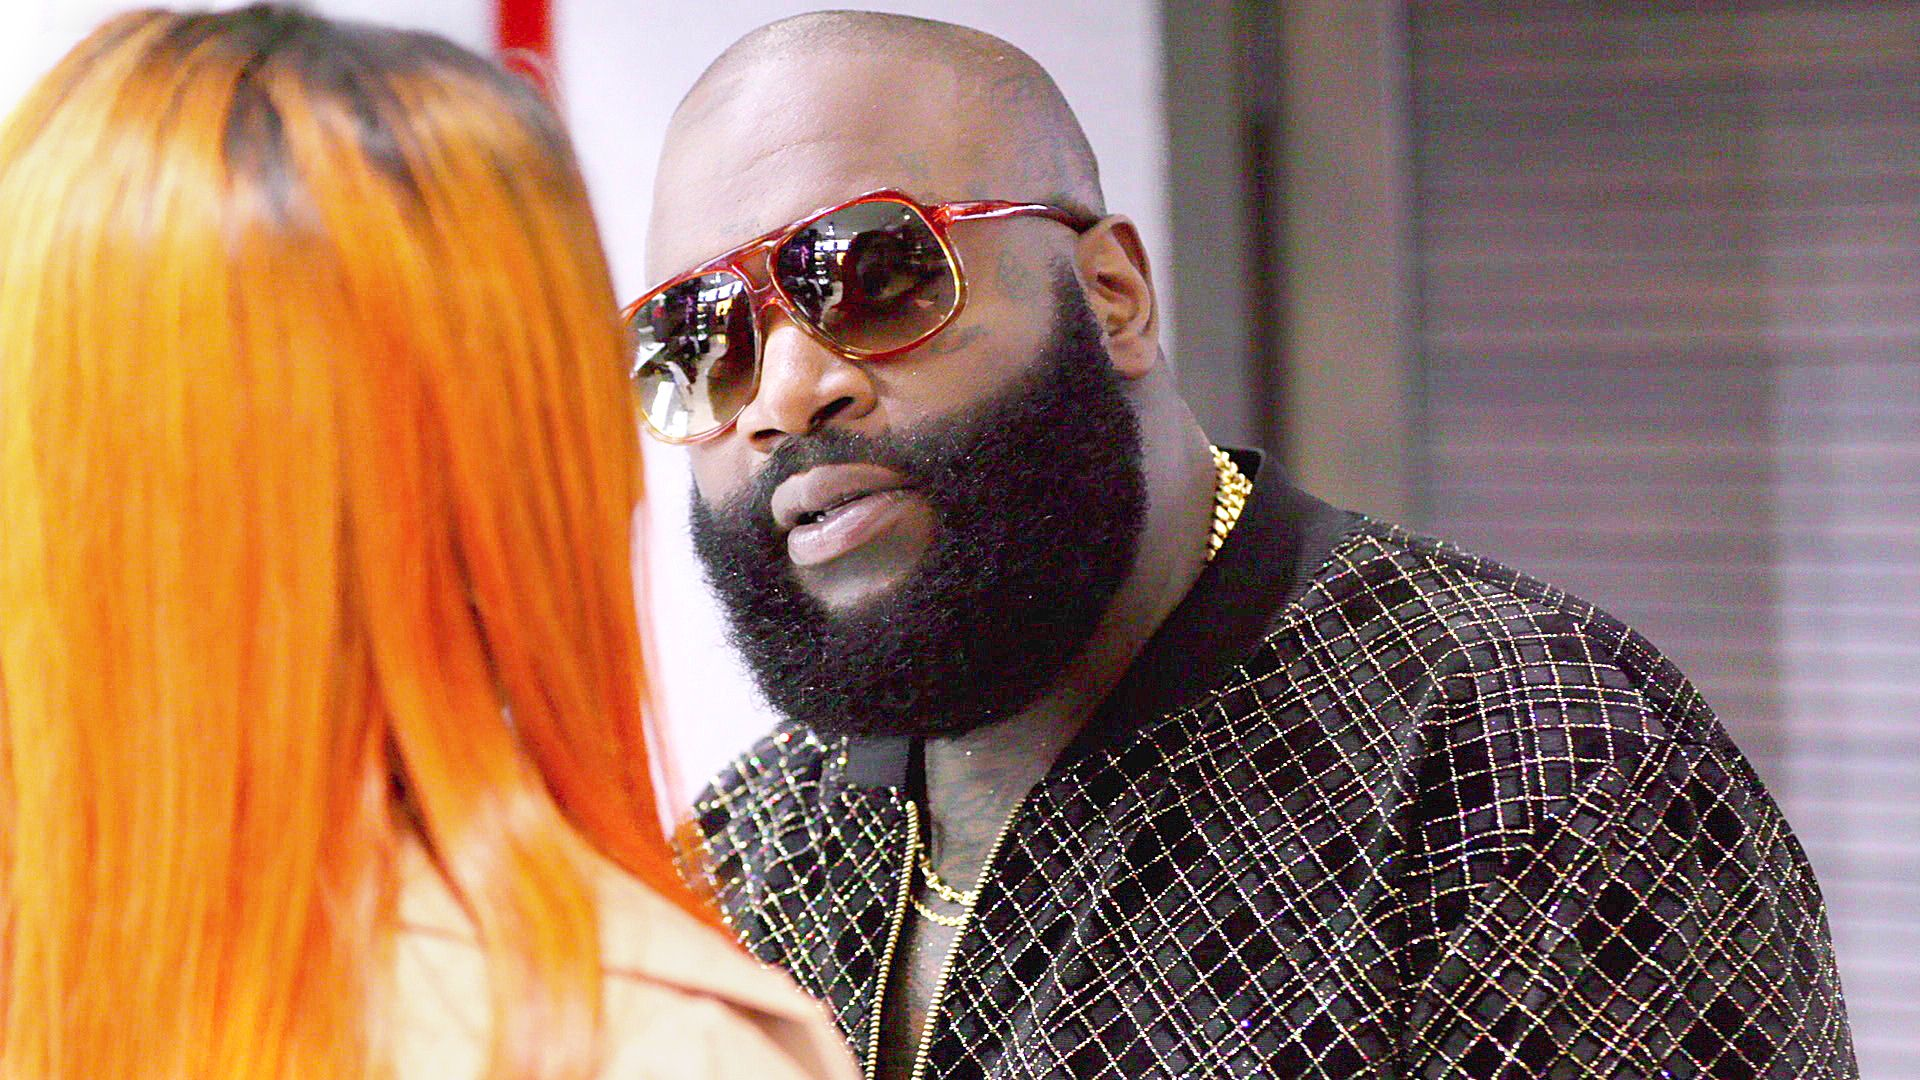 Who is rick ross signed to